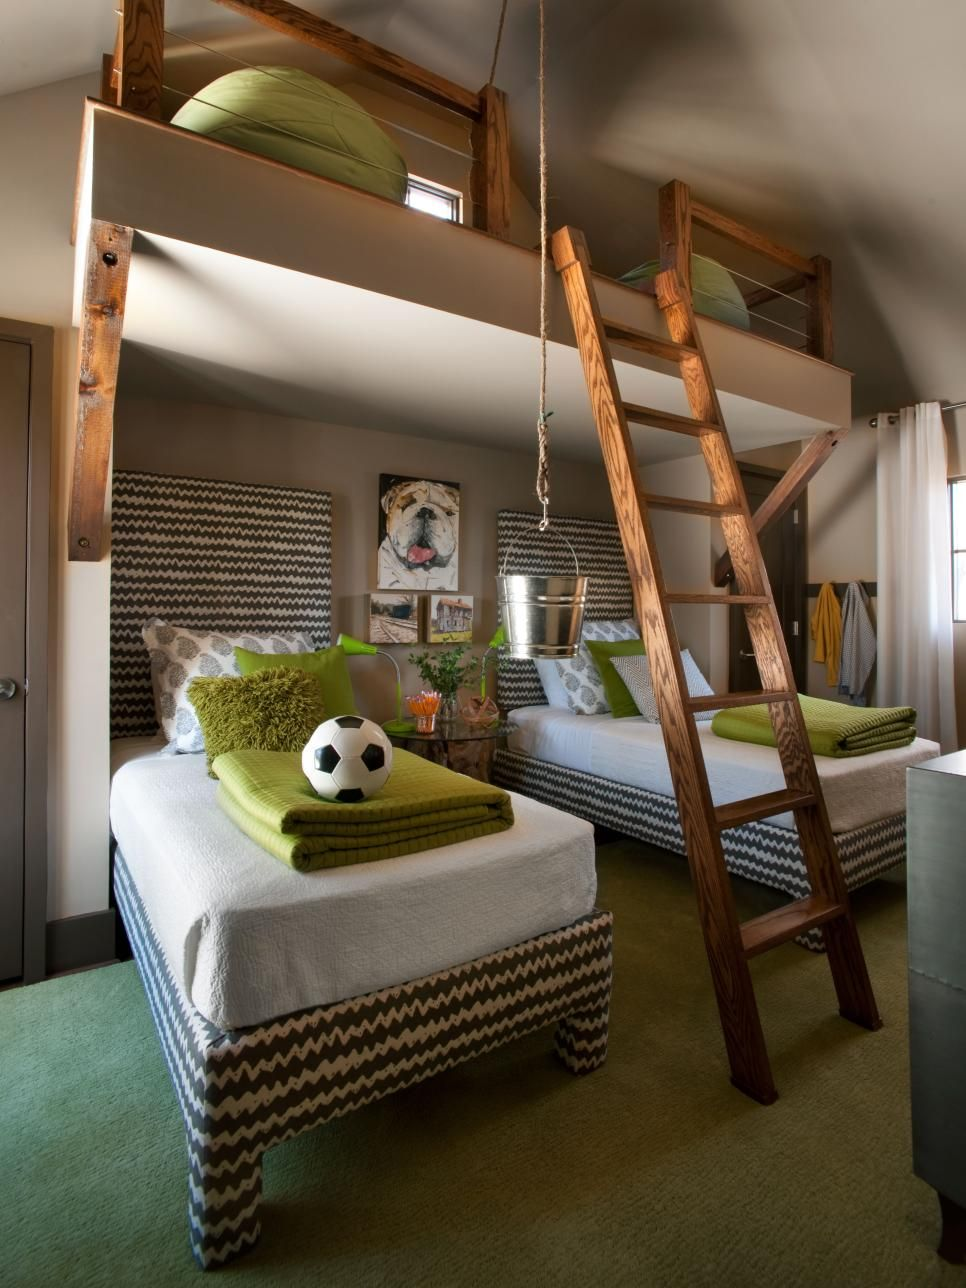 Amazing Kids Rooms Gallery Of Bedrooms And Playrooms Hgtv Gt